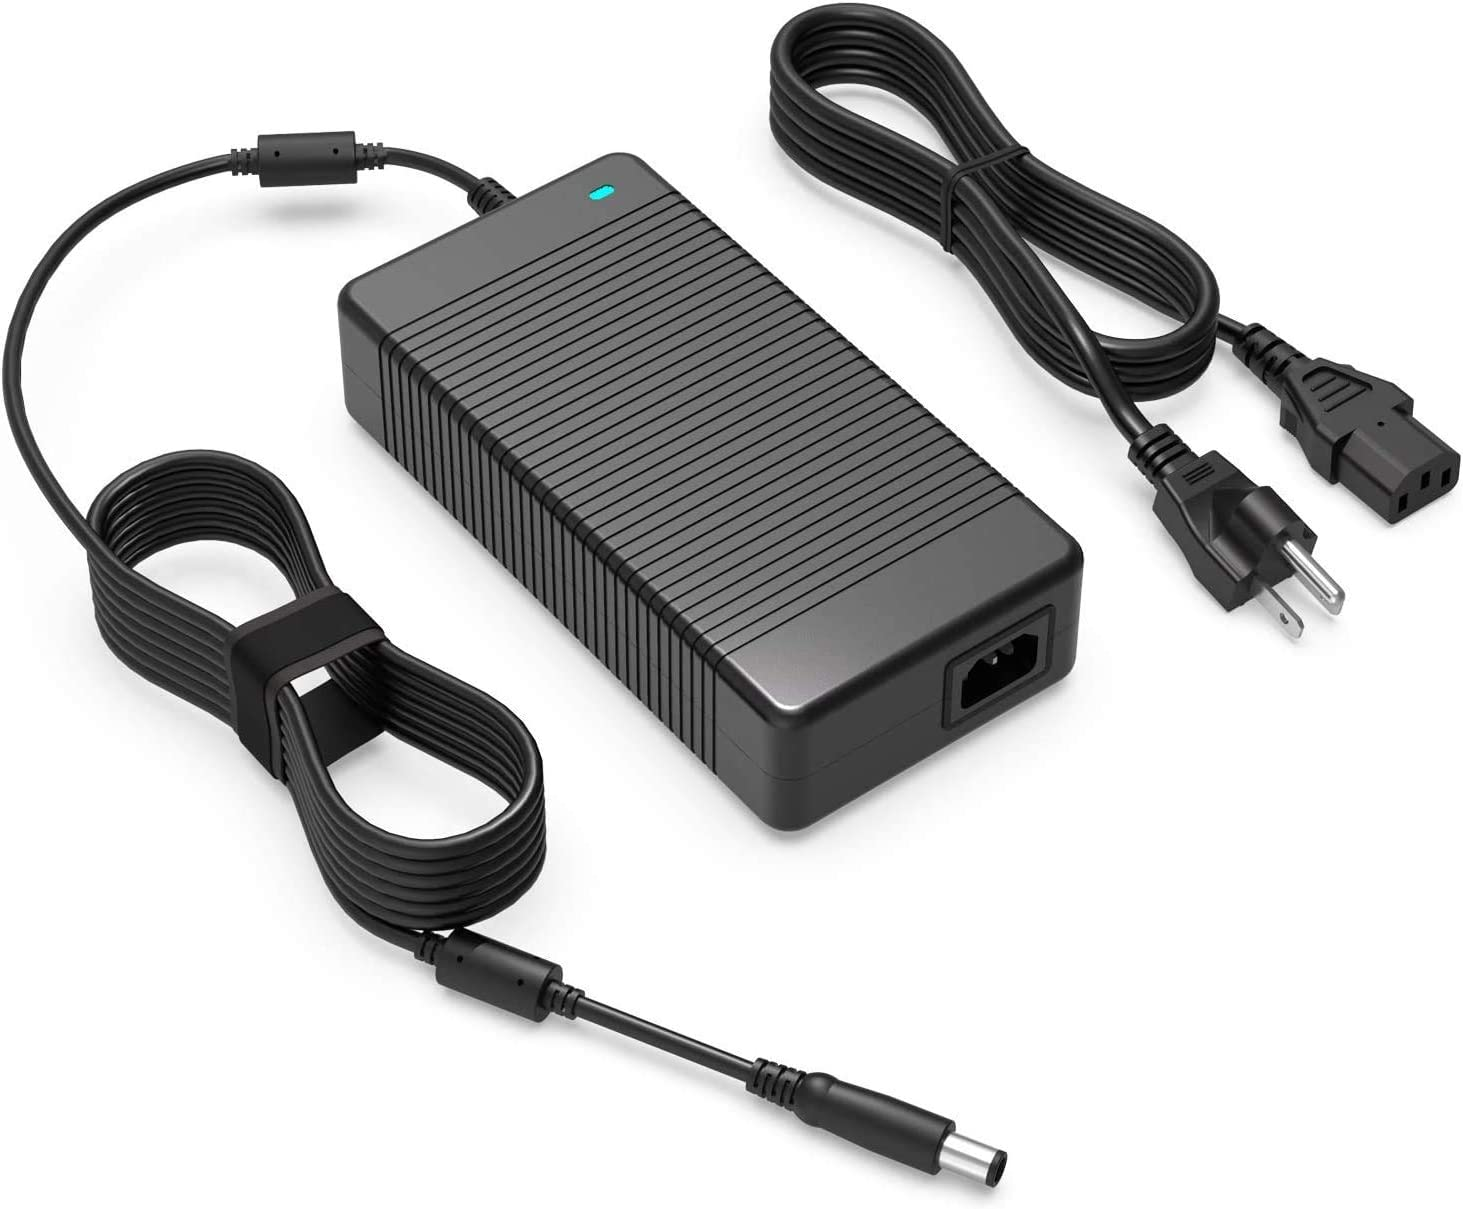 230W 180W Charger Discount is also underway Fit for MSI GE75 GE73 GE73VR GE63 GE63VR Surprise price GE65